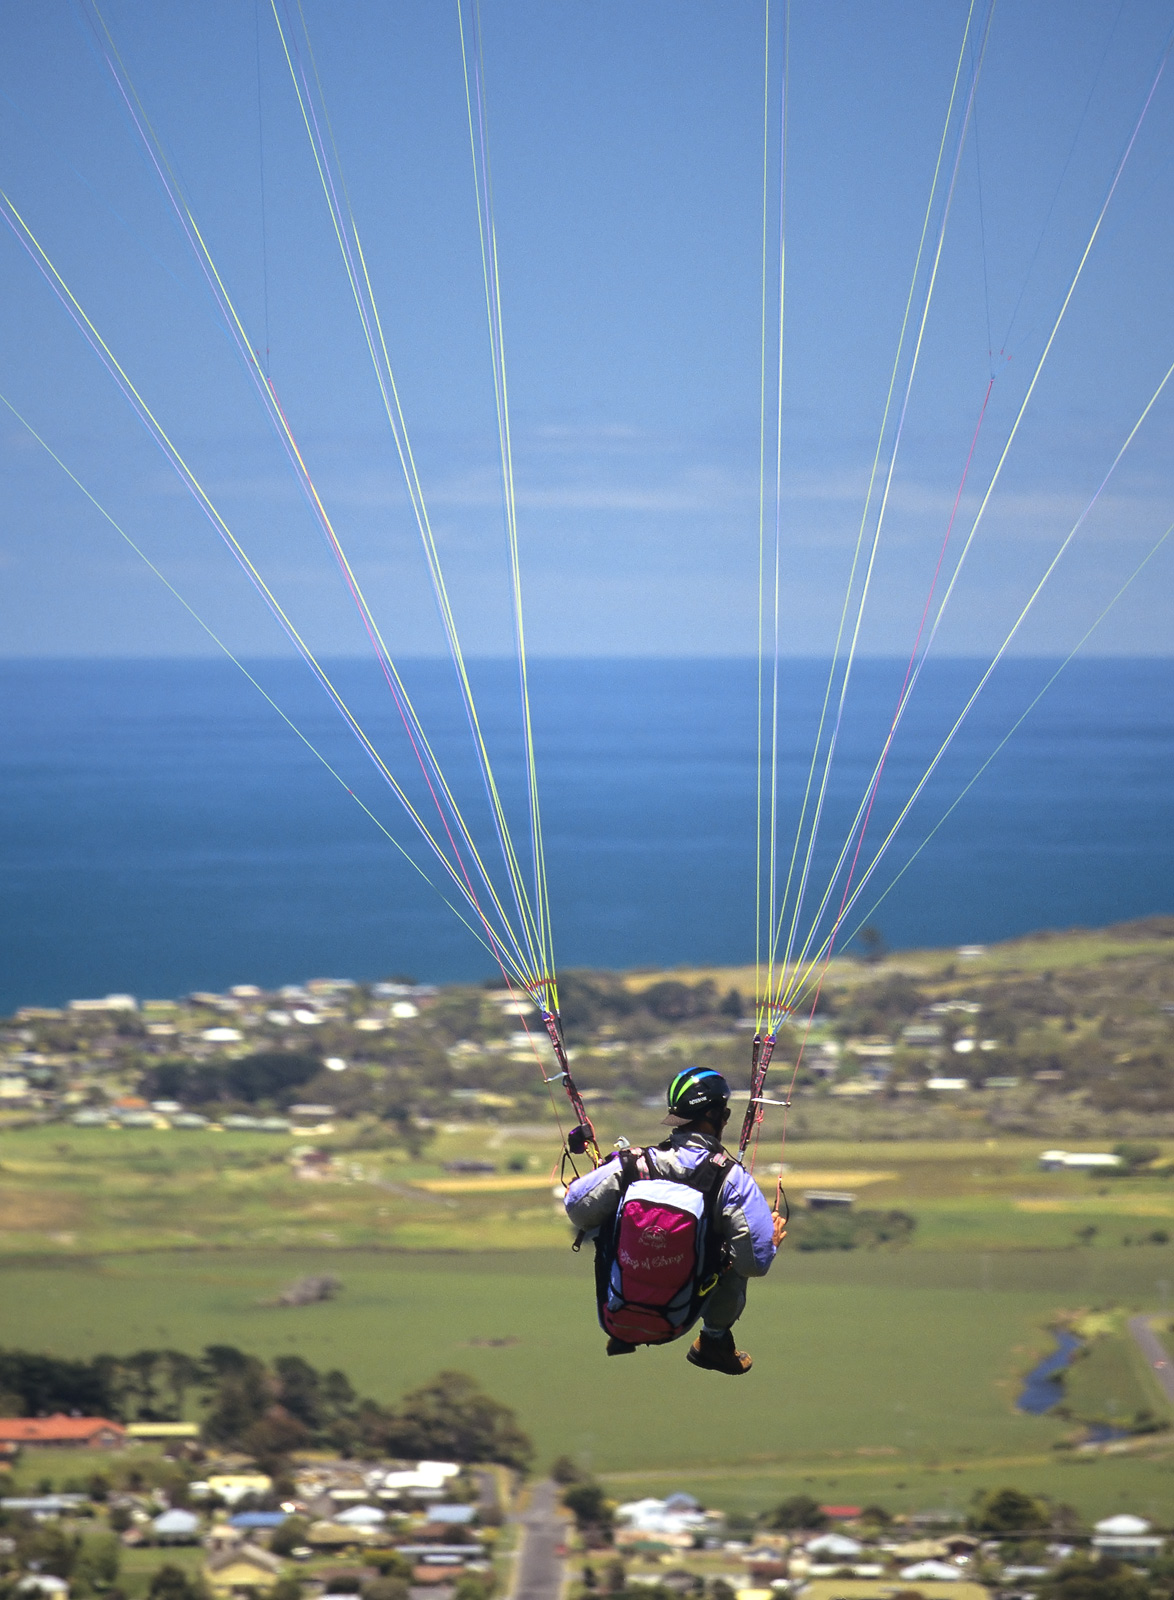 Travelling along the Great Ocean Road we noticed several paragliders launching themselves off the cliffs at Marineo above Apollo...